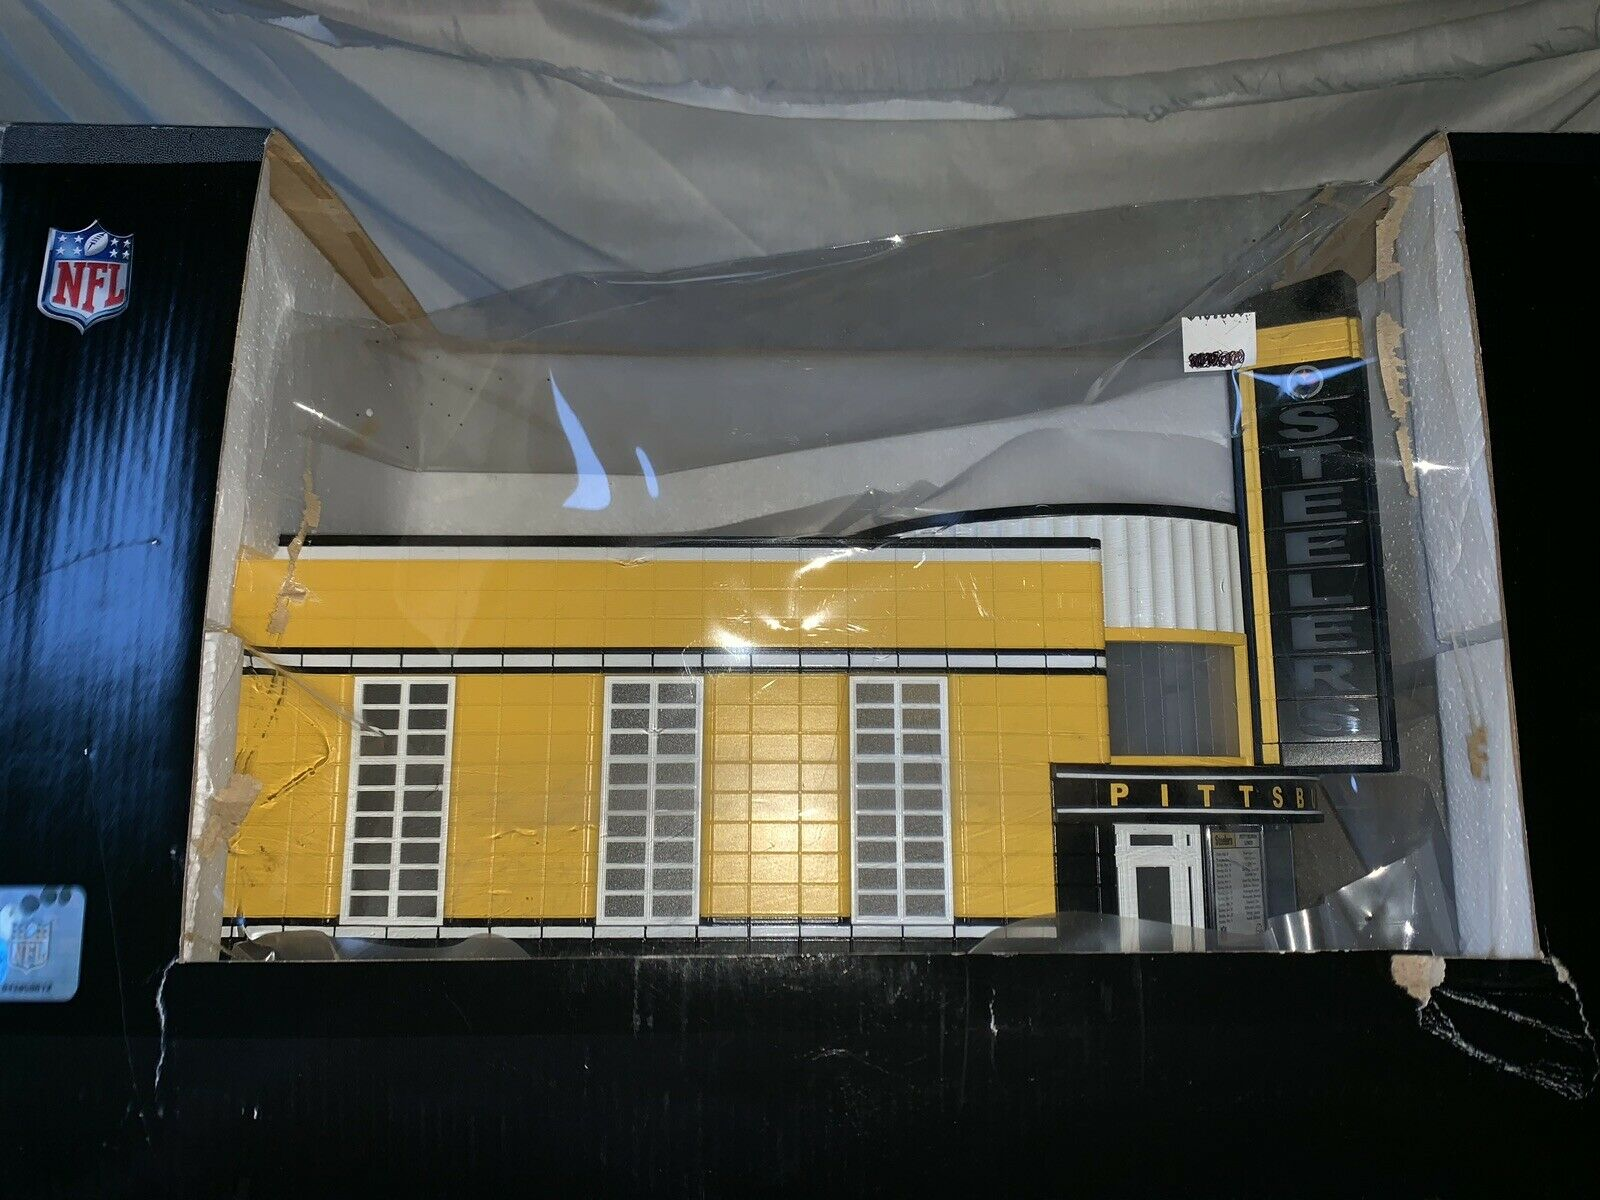 MTH RAILKING PITTSBURGH STEELERS BUS STATION ACCESSORY NEW NFL FOOTBALL BUILDING